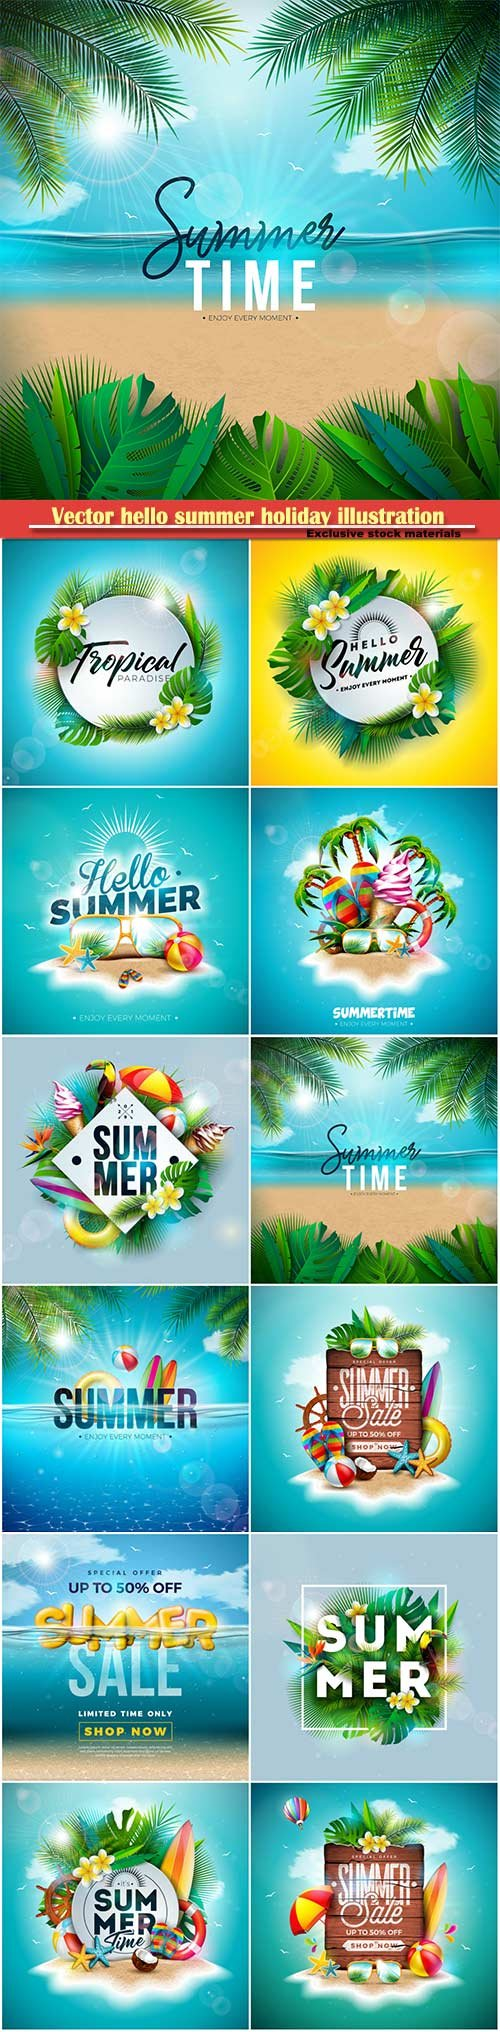 Vector hello summer holiday illustration # 4